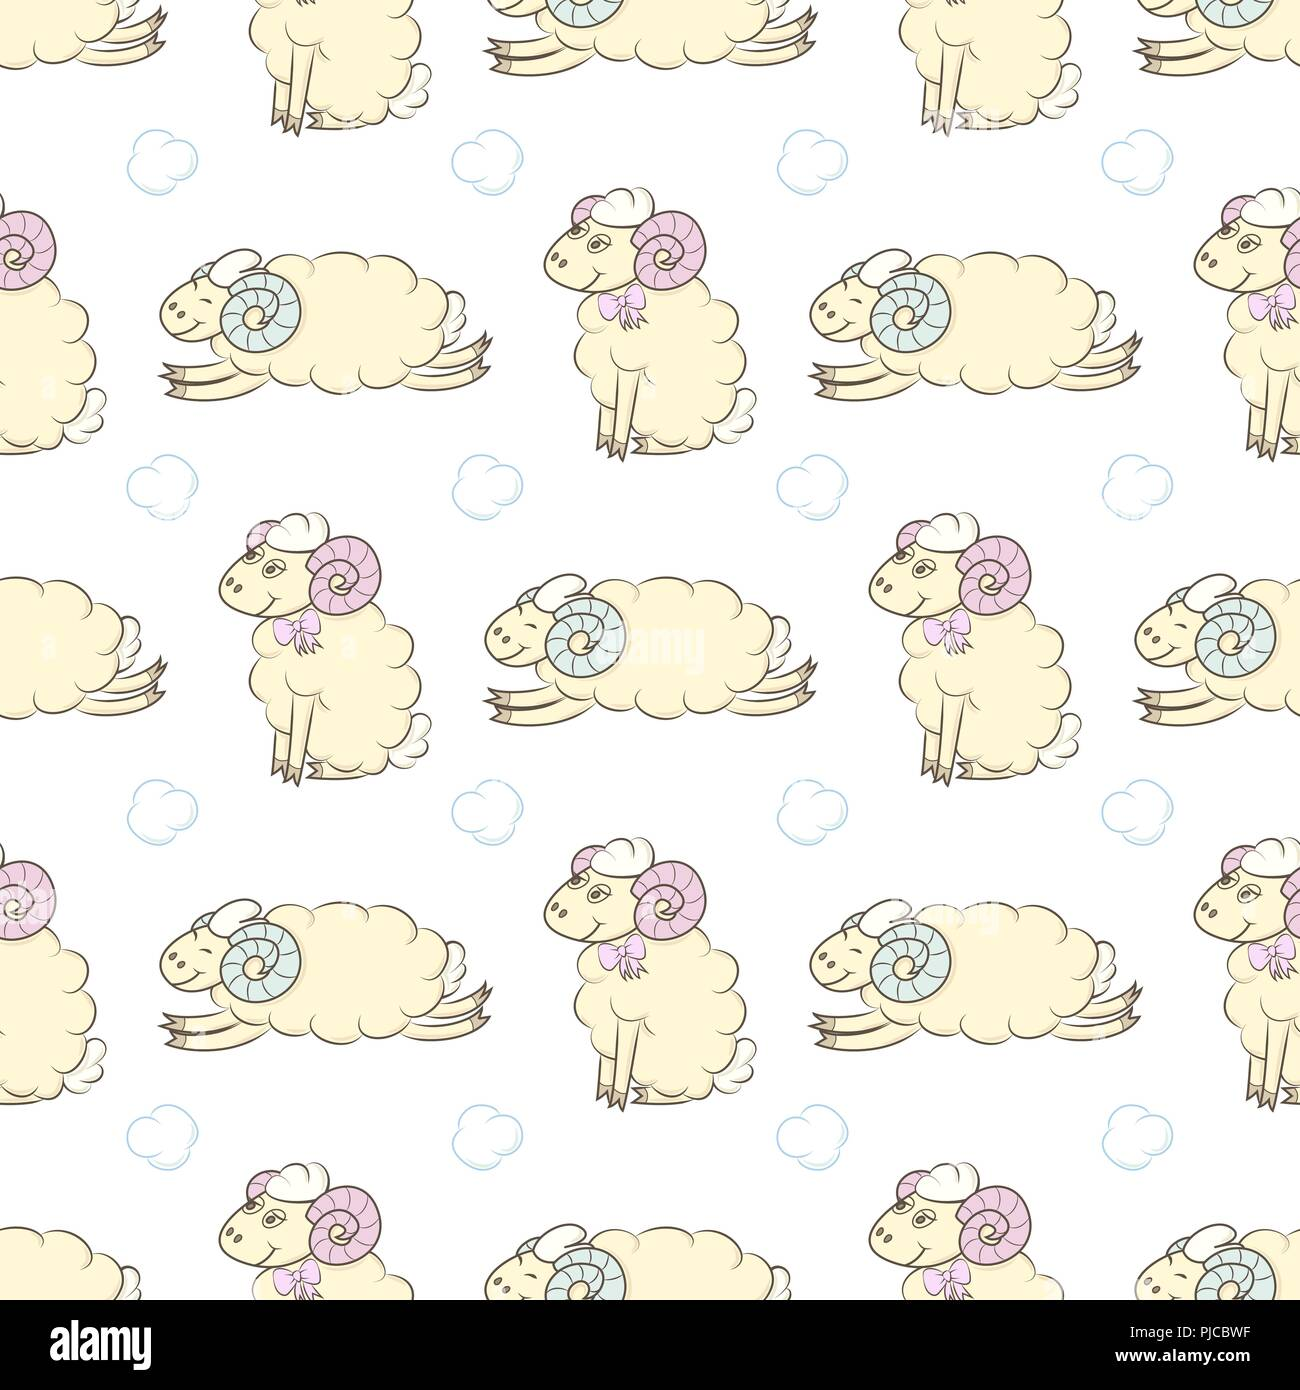 Cartoon Sheep Seamless Wallpaper Vector Illustration Pattern Background For Textile